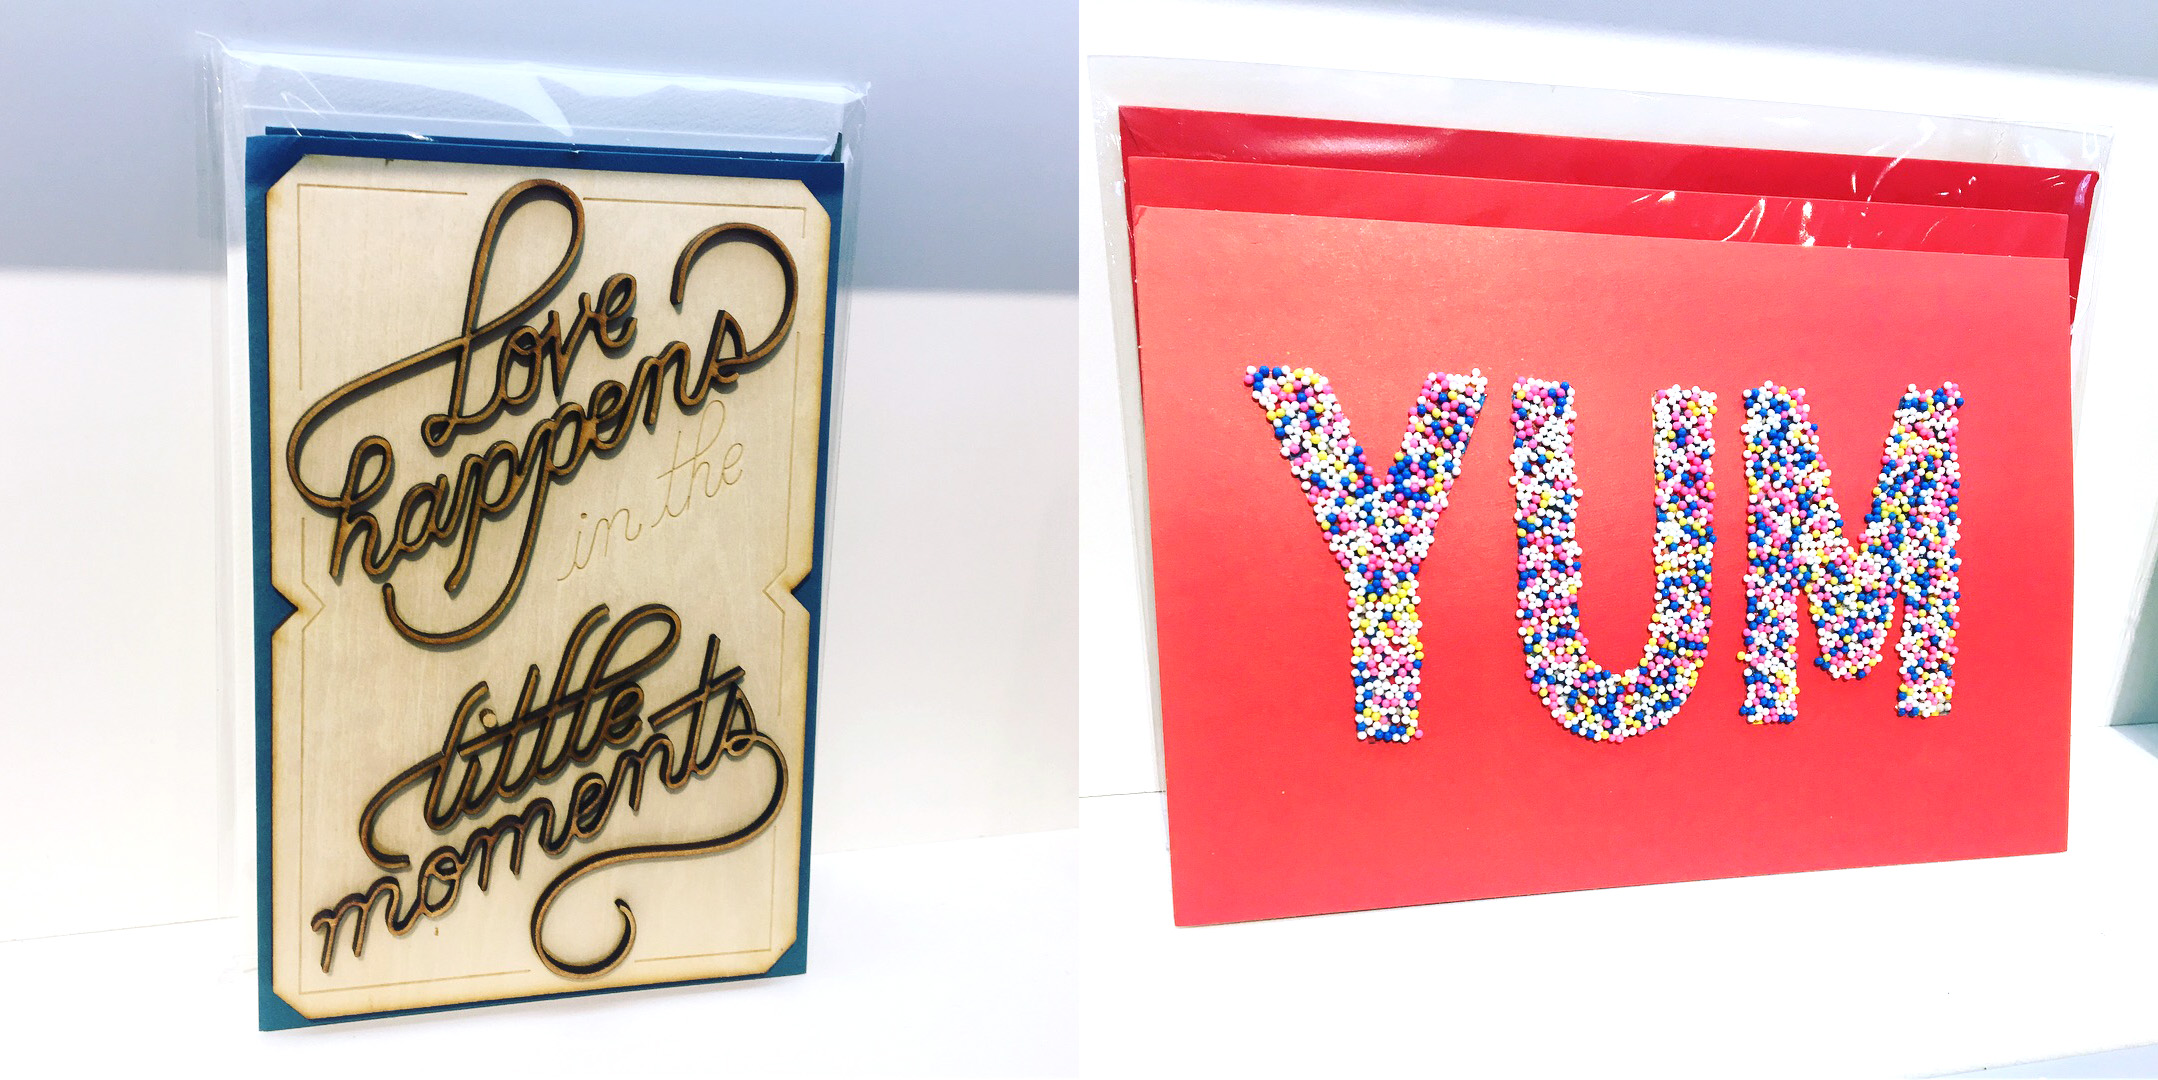 3D textures from Hallmark's signature collection.